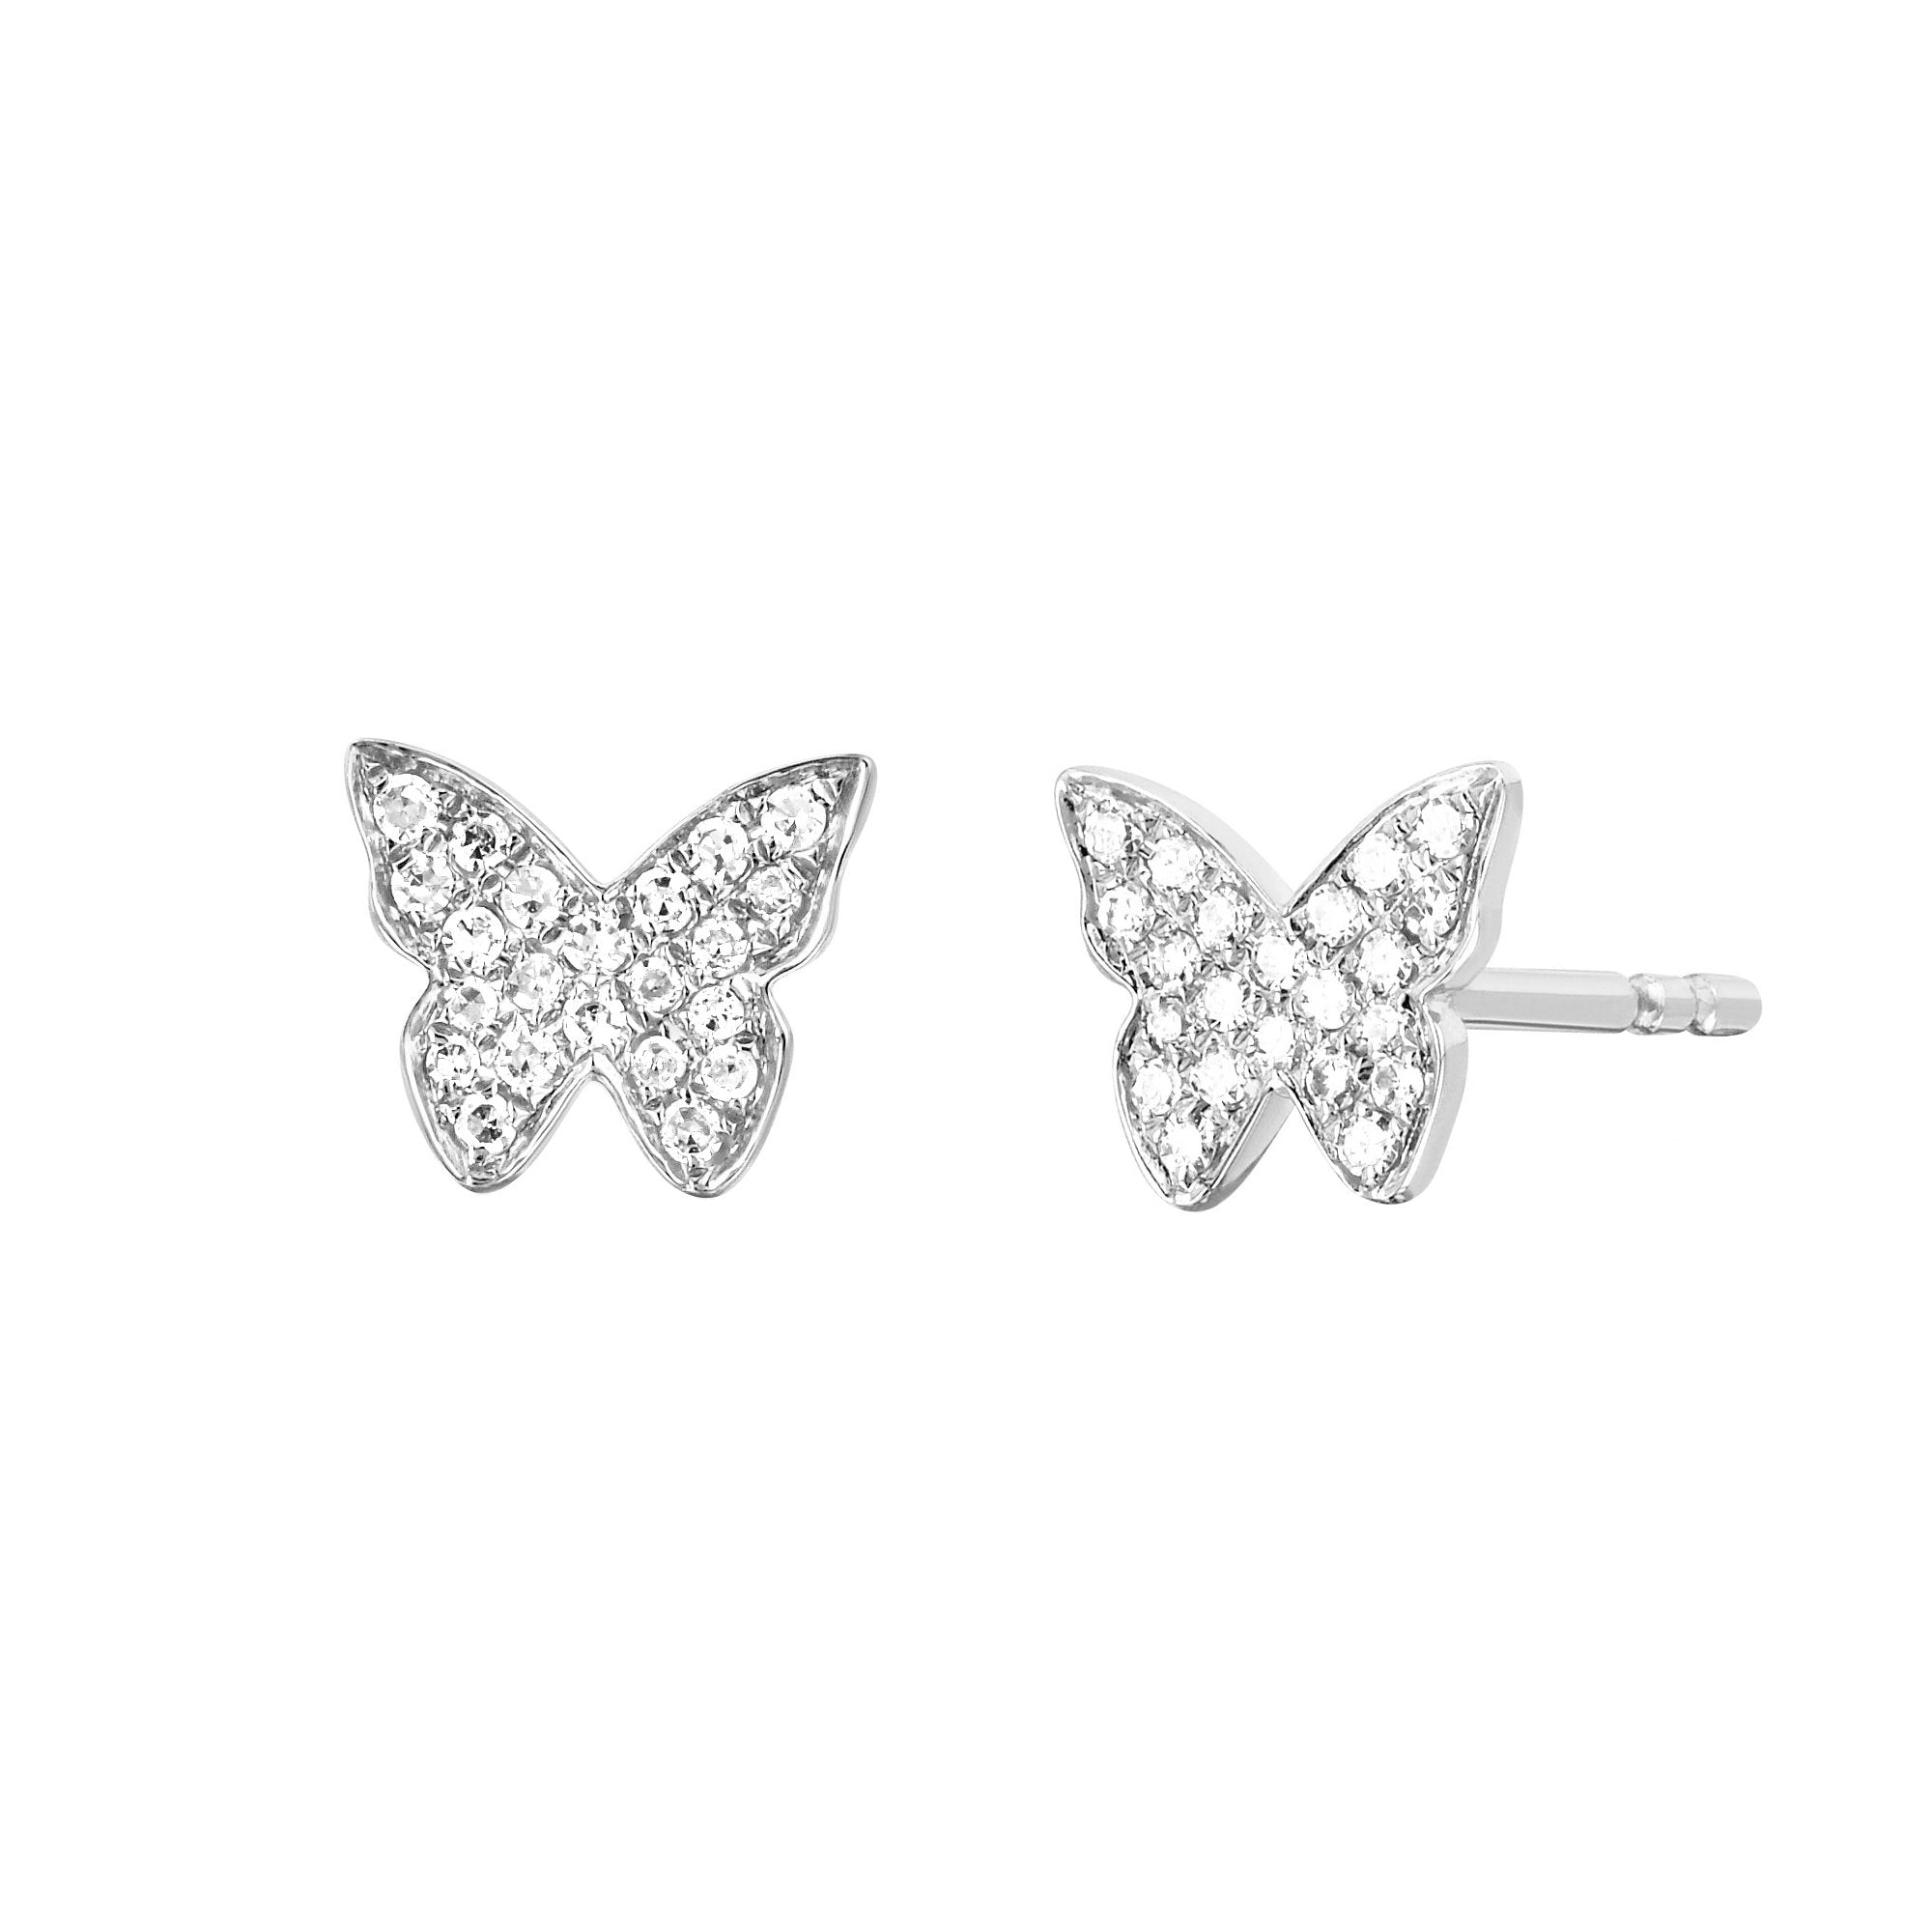 Diamond Butterfly Studs by EF Collection for Broken English Jewelry